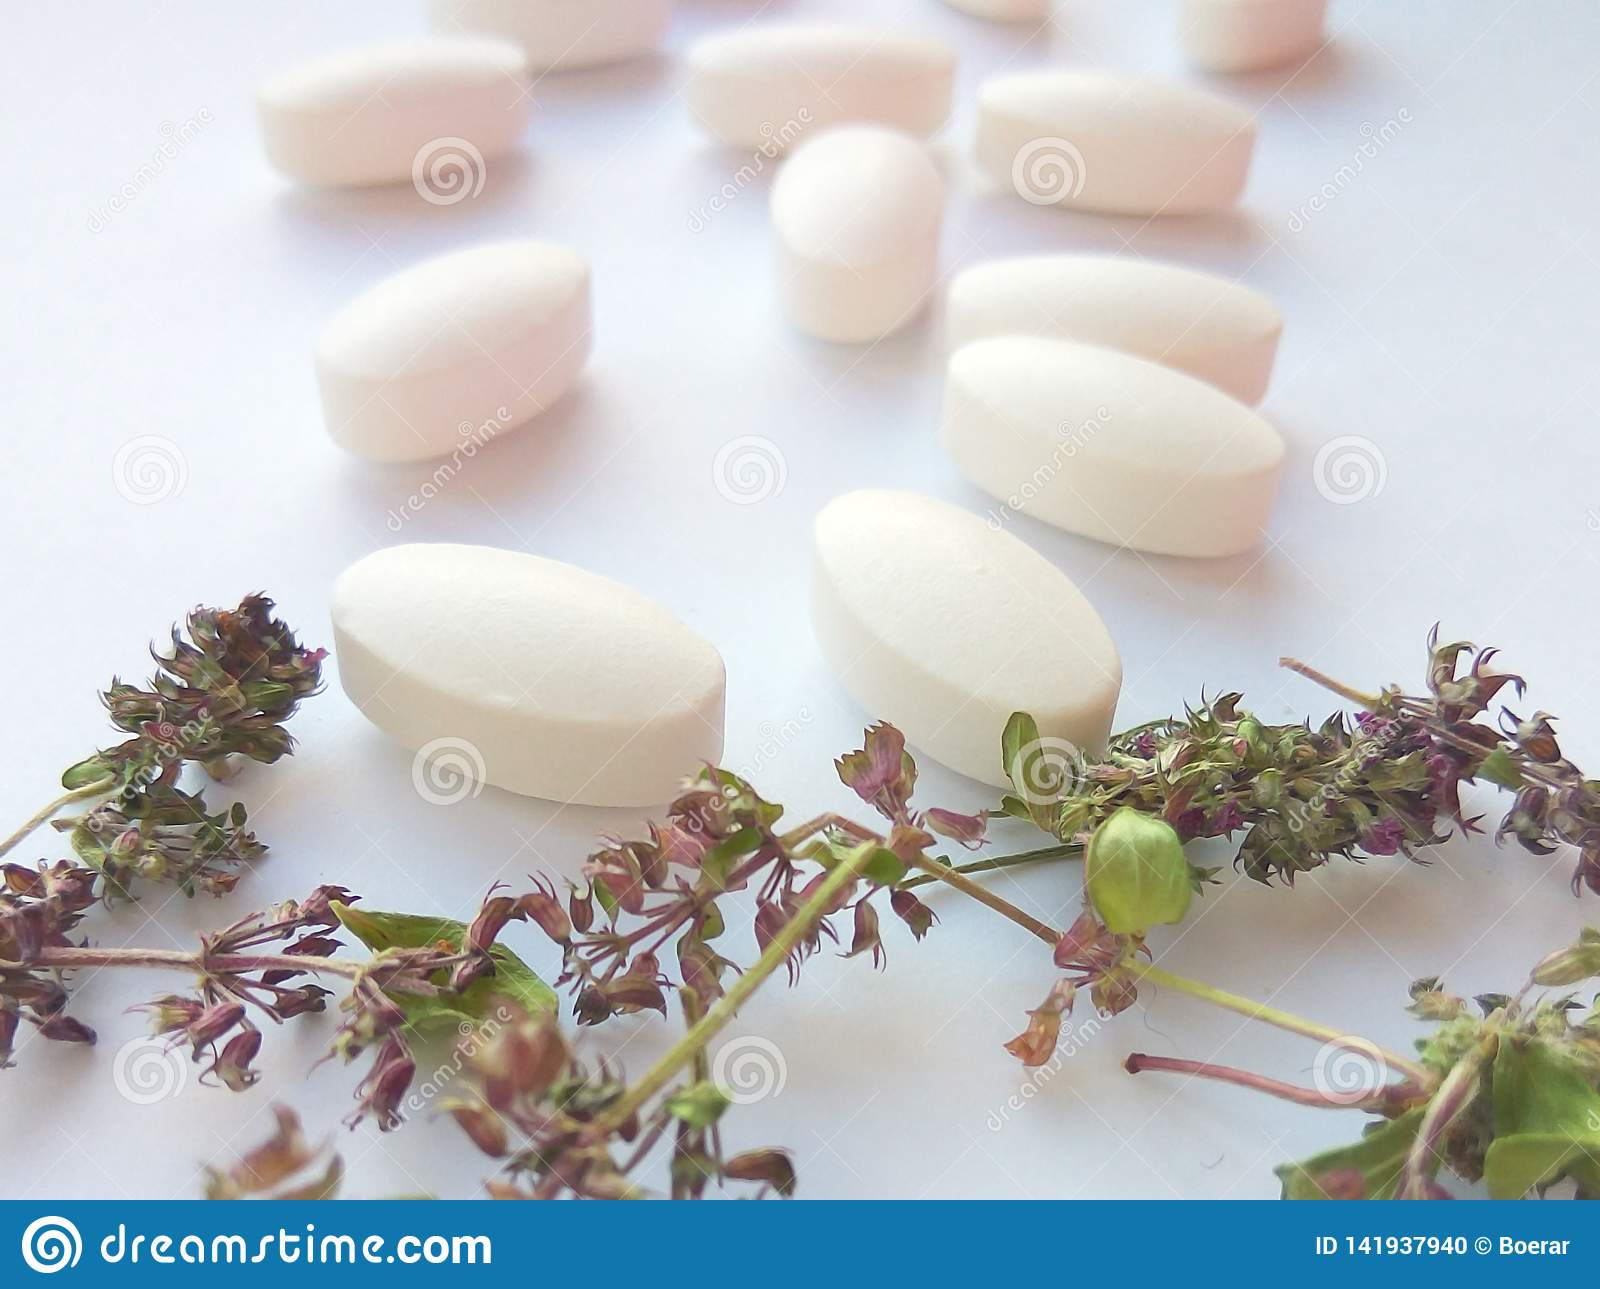 Herbal medicine pills with dry natural herbs on white background. Concept of herbal medicine and dietary supplements